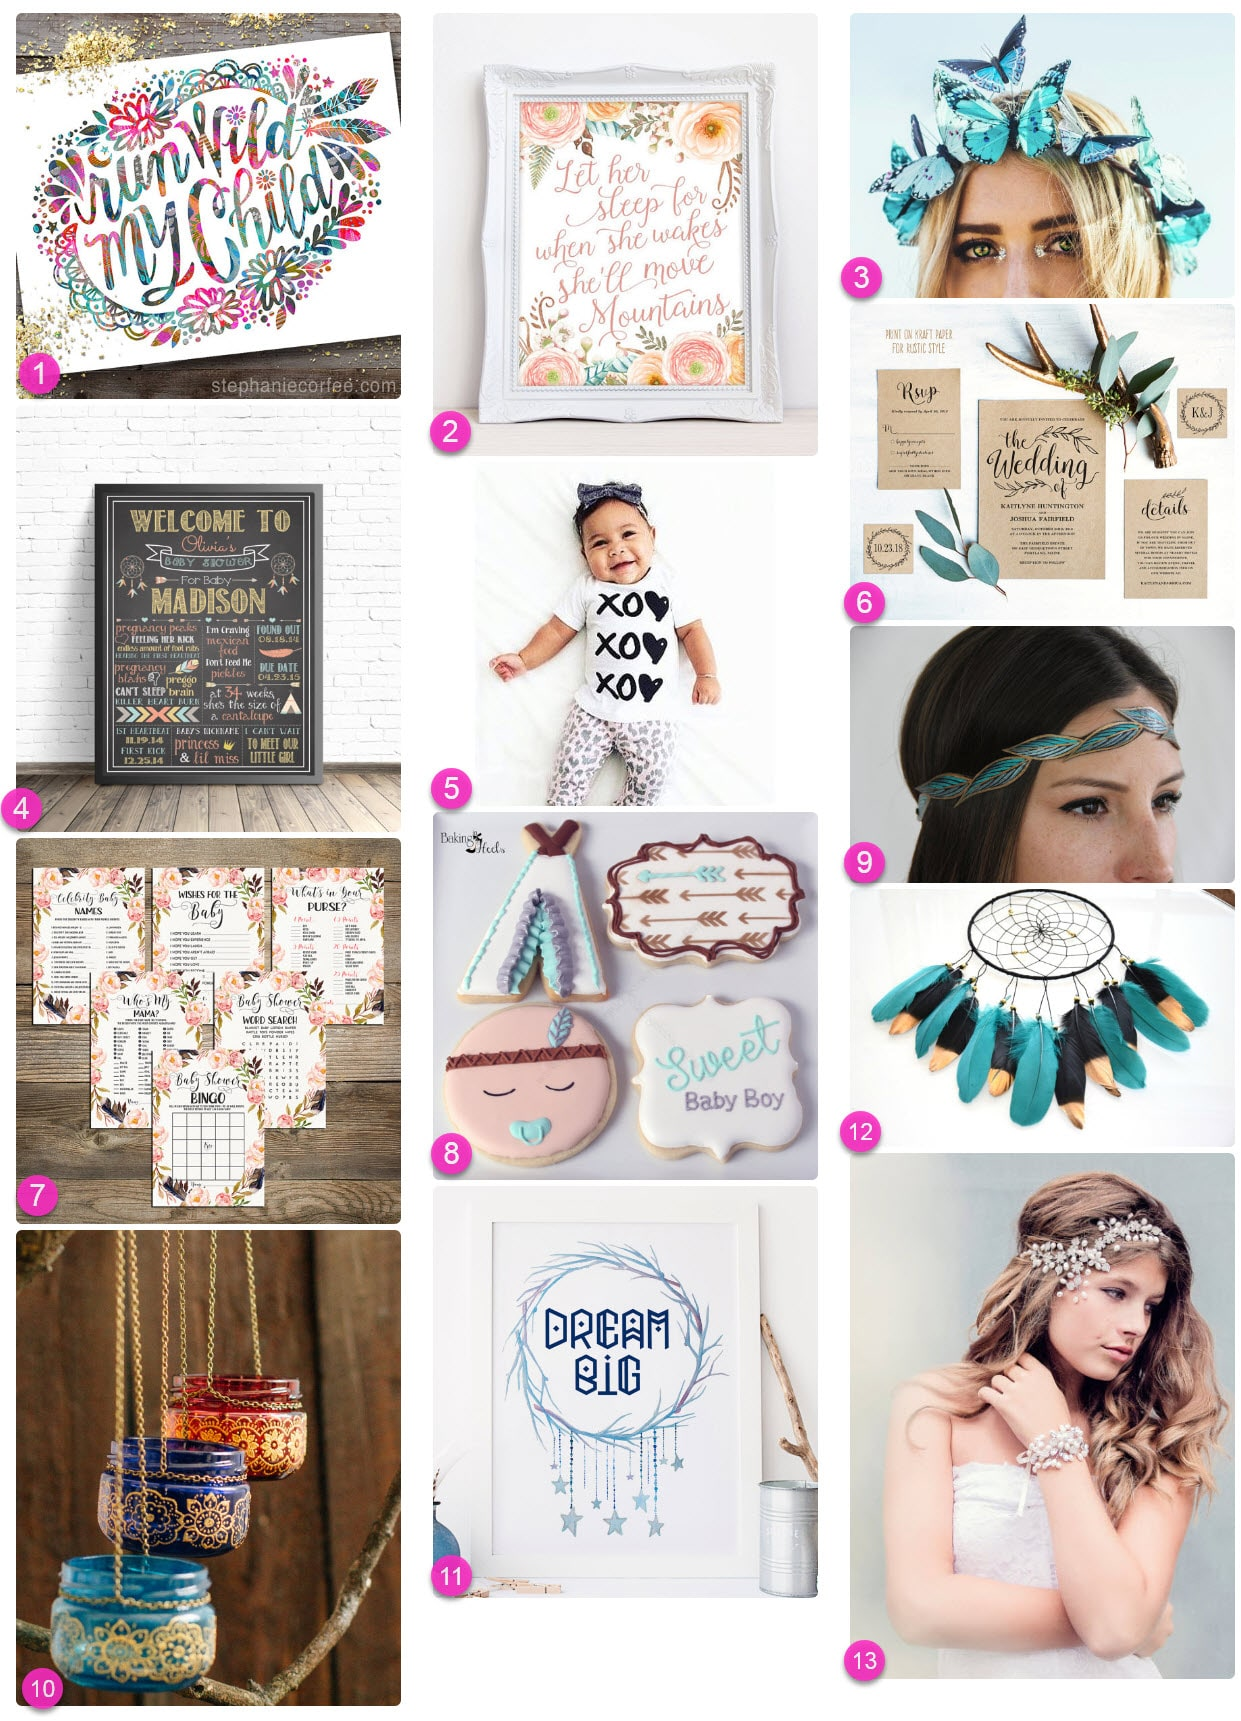 Bohemian style ideas for weddings and baby showers or boho baby birthday